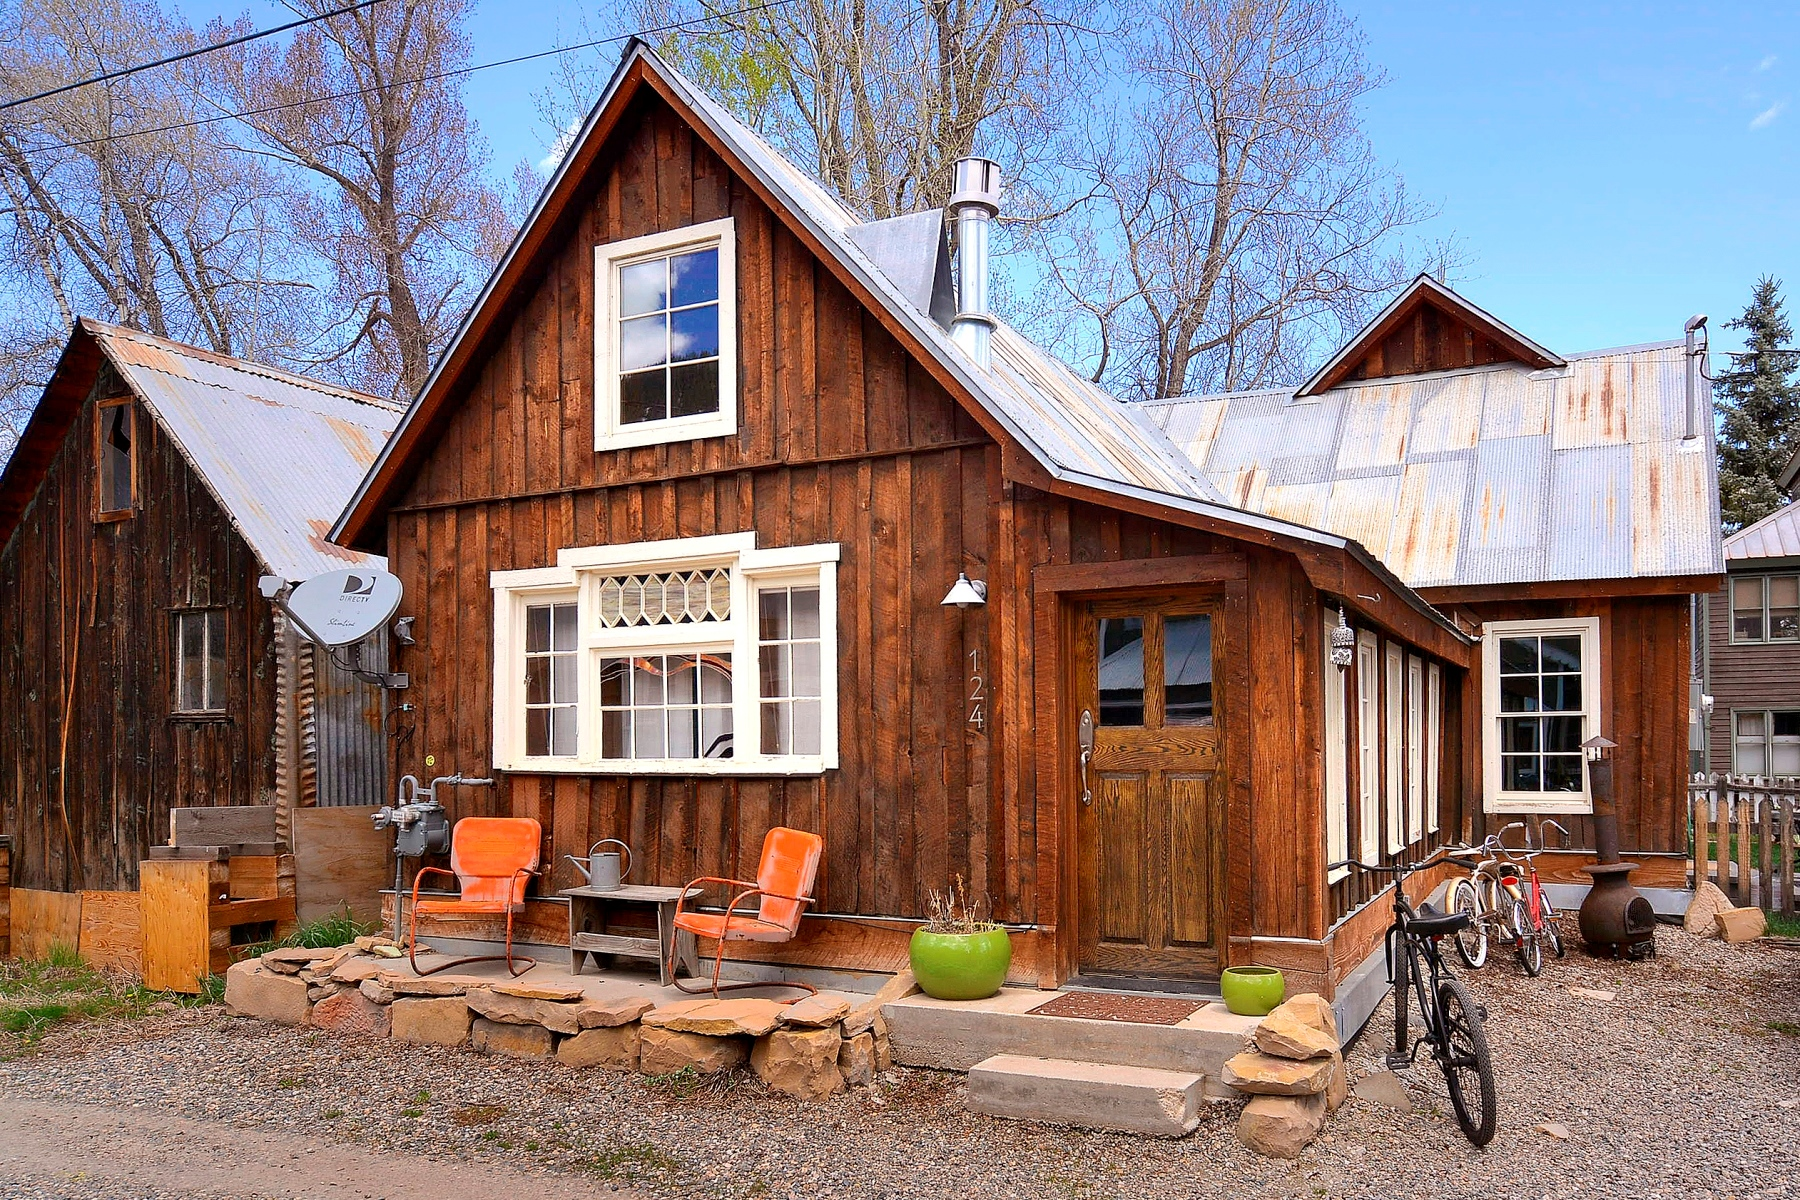 Single Family Home for Sale at Little Gem in the Heart of Town 124 Sopris Avenue Crested Butte, Colorado, 81224 United States